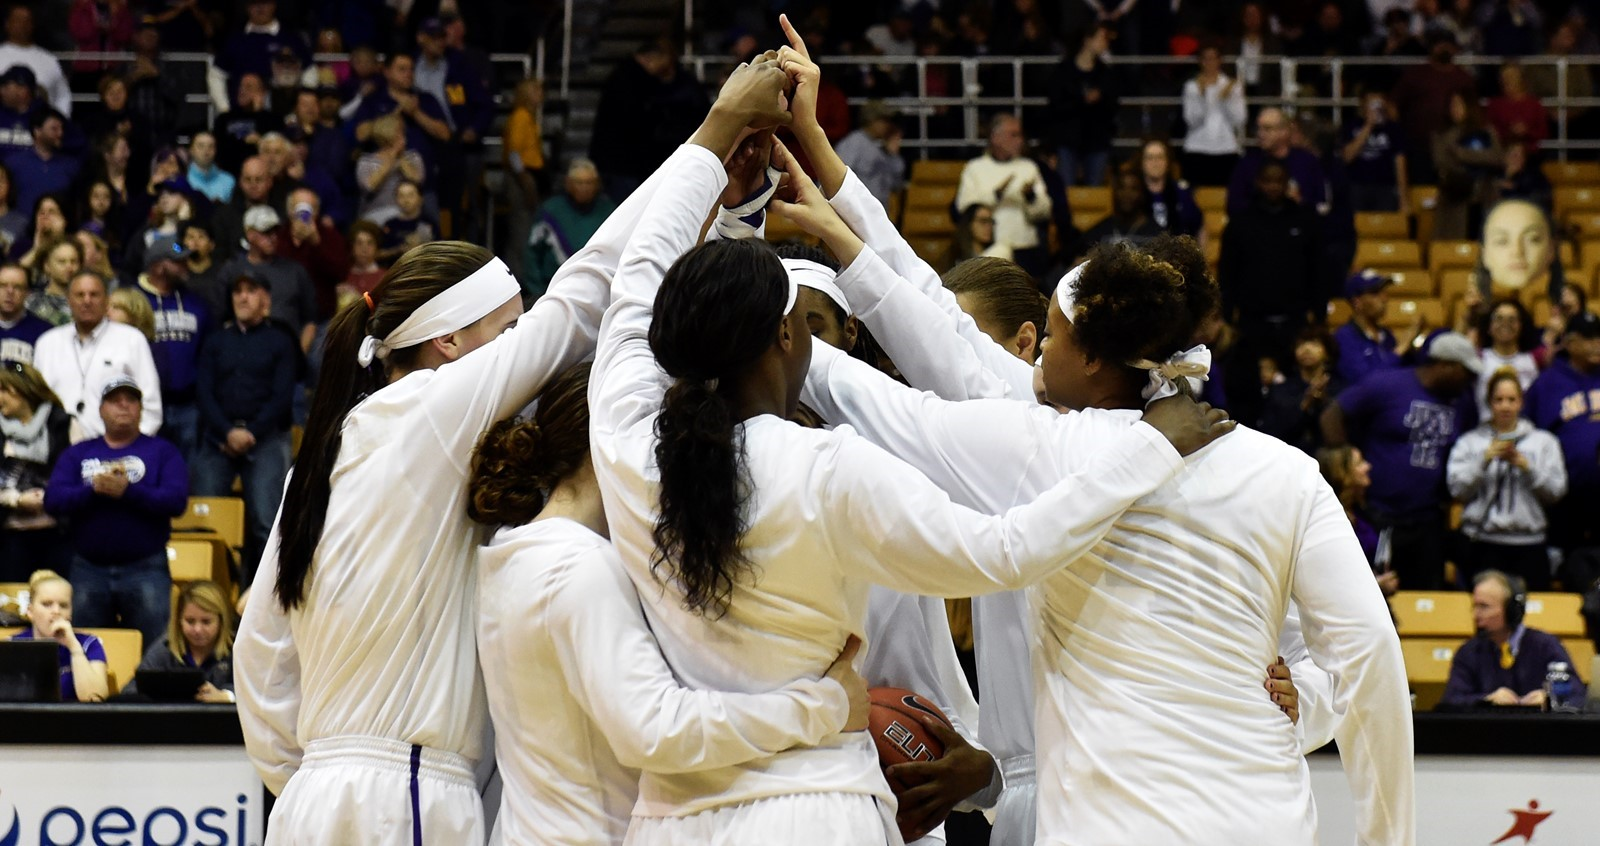 Women's Basketball: JMU Slated for Tough Non-Conference Schedule in 2016-17